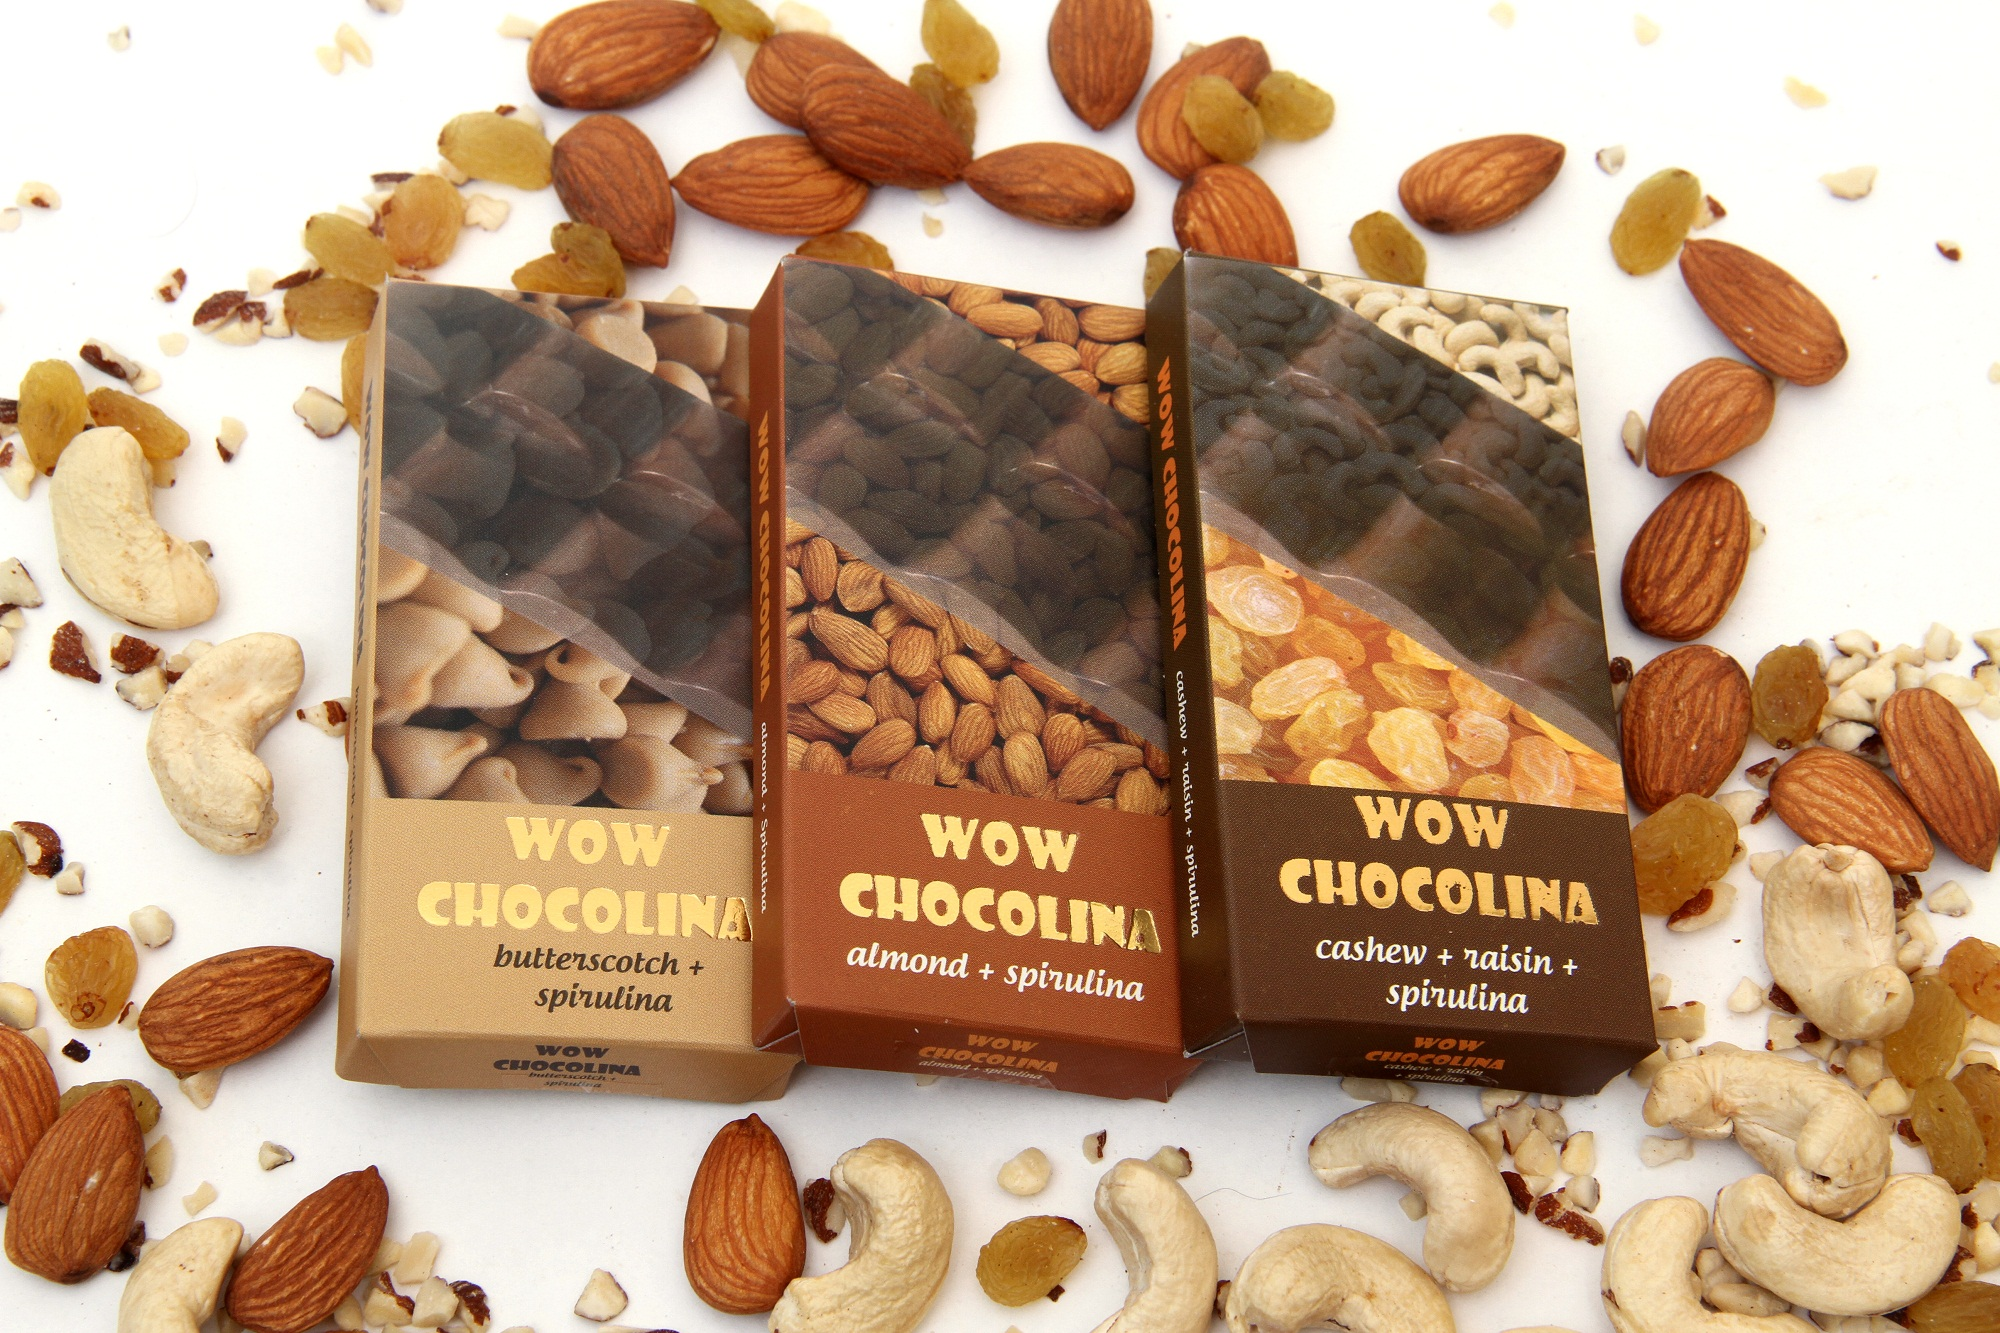 WOW CHOCOLINA